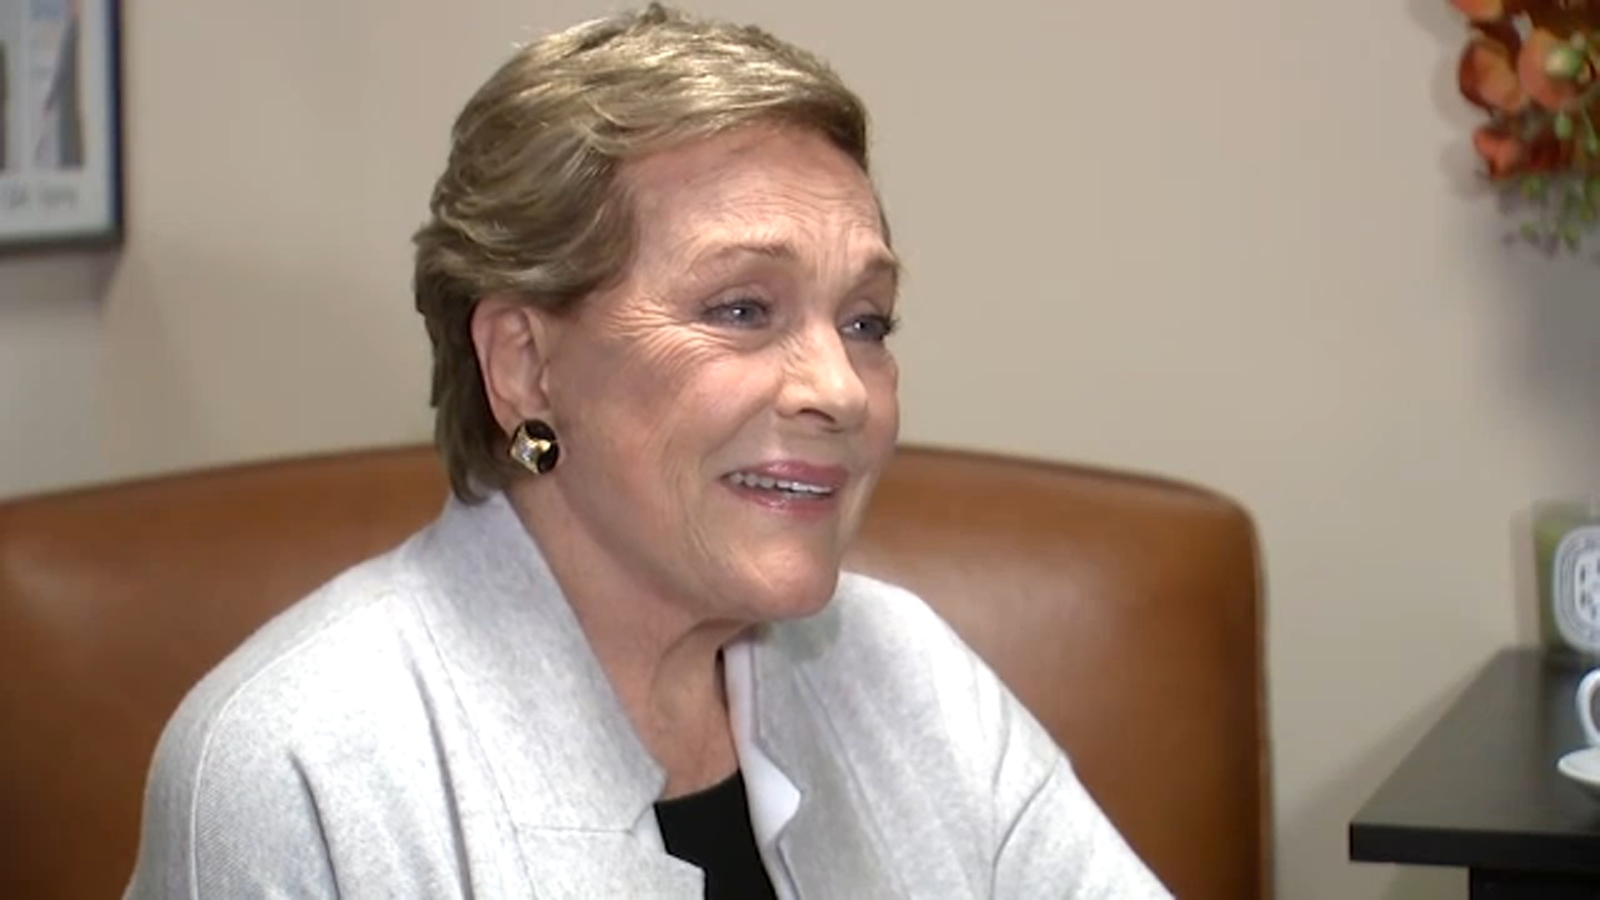 Julie Andrews reflects on career, fans, family in new memoir 'Home Work'